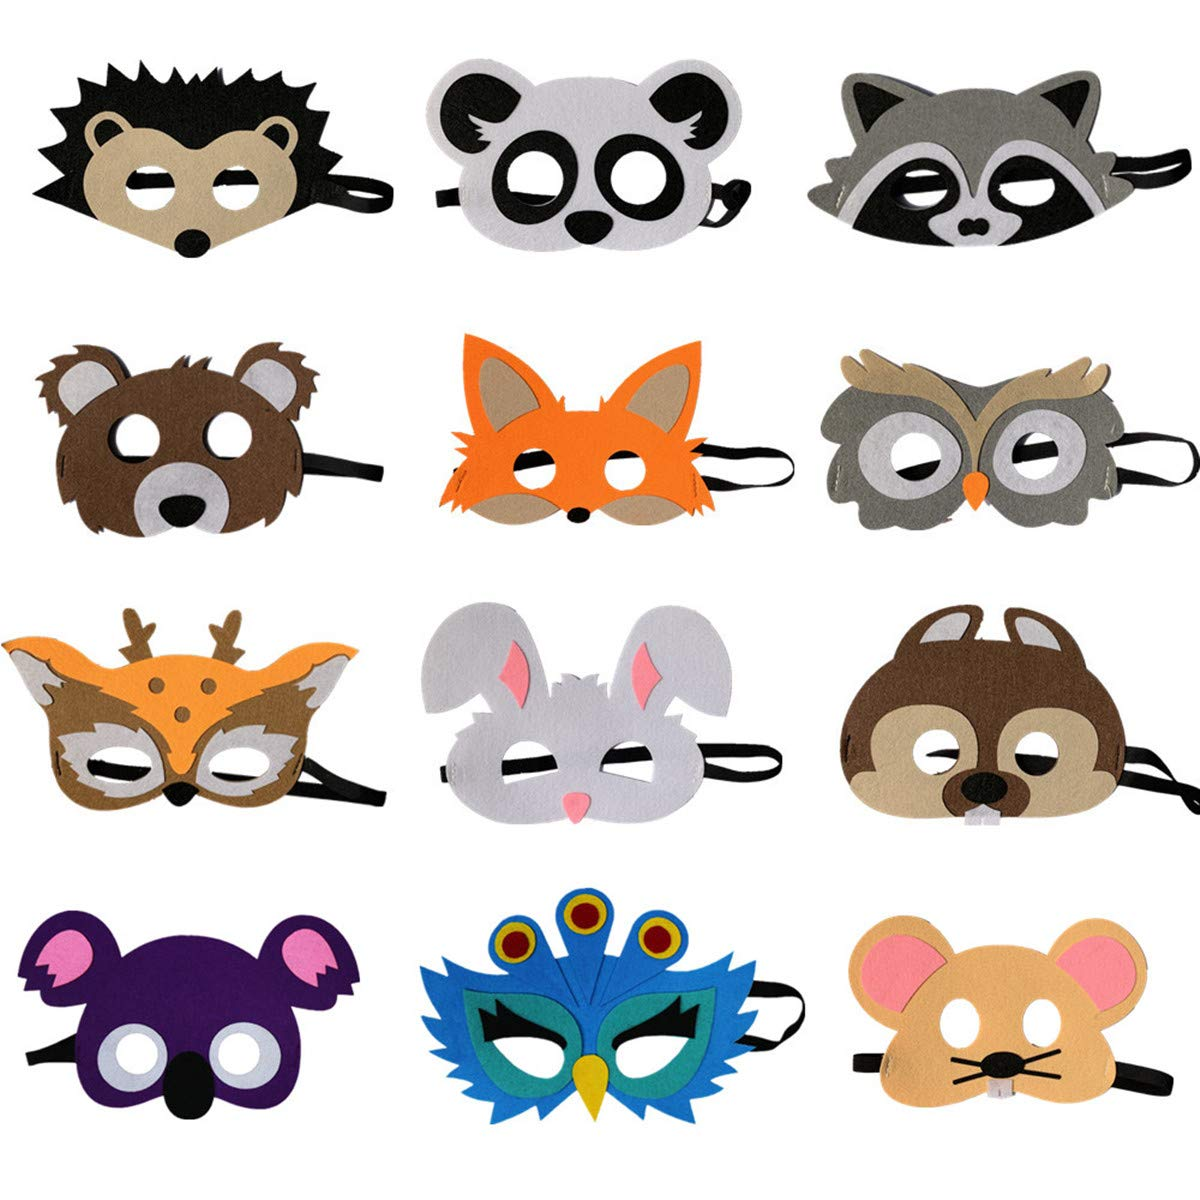 STARKMA 12pc Forest-Friends Animals Felt Masks Woodland Creatures Animal Cosplay Camp Themed Party Favors Supplies for Kids